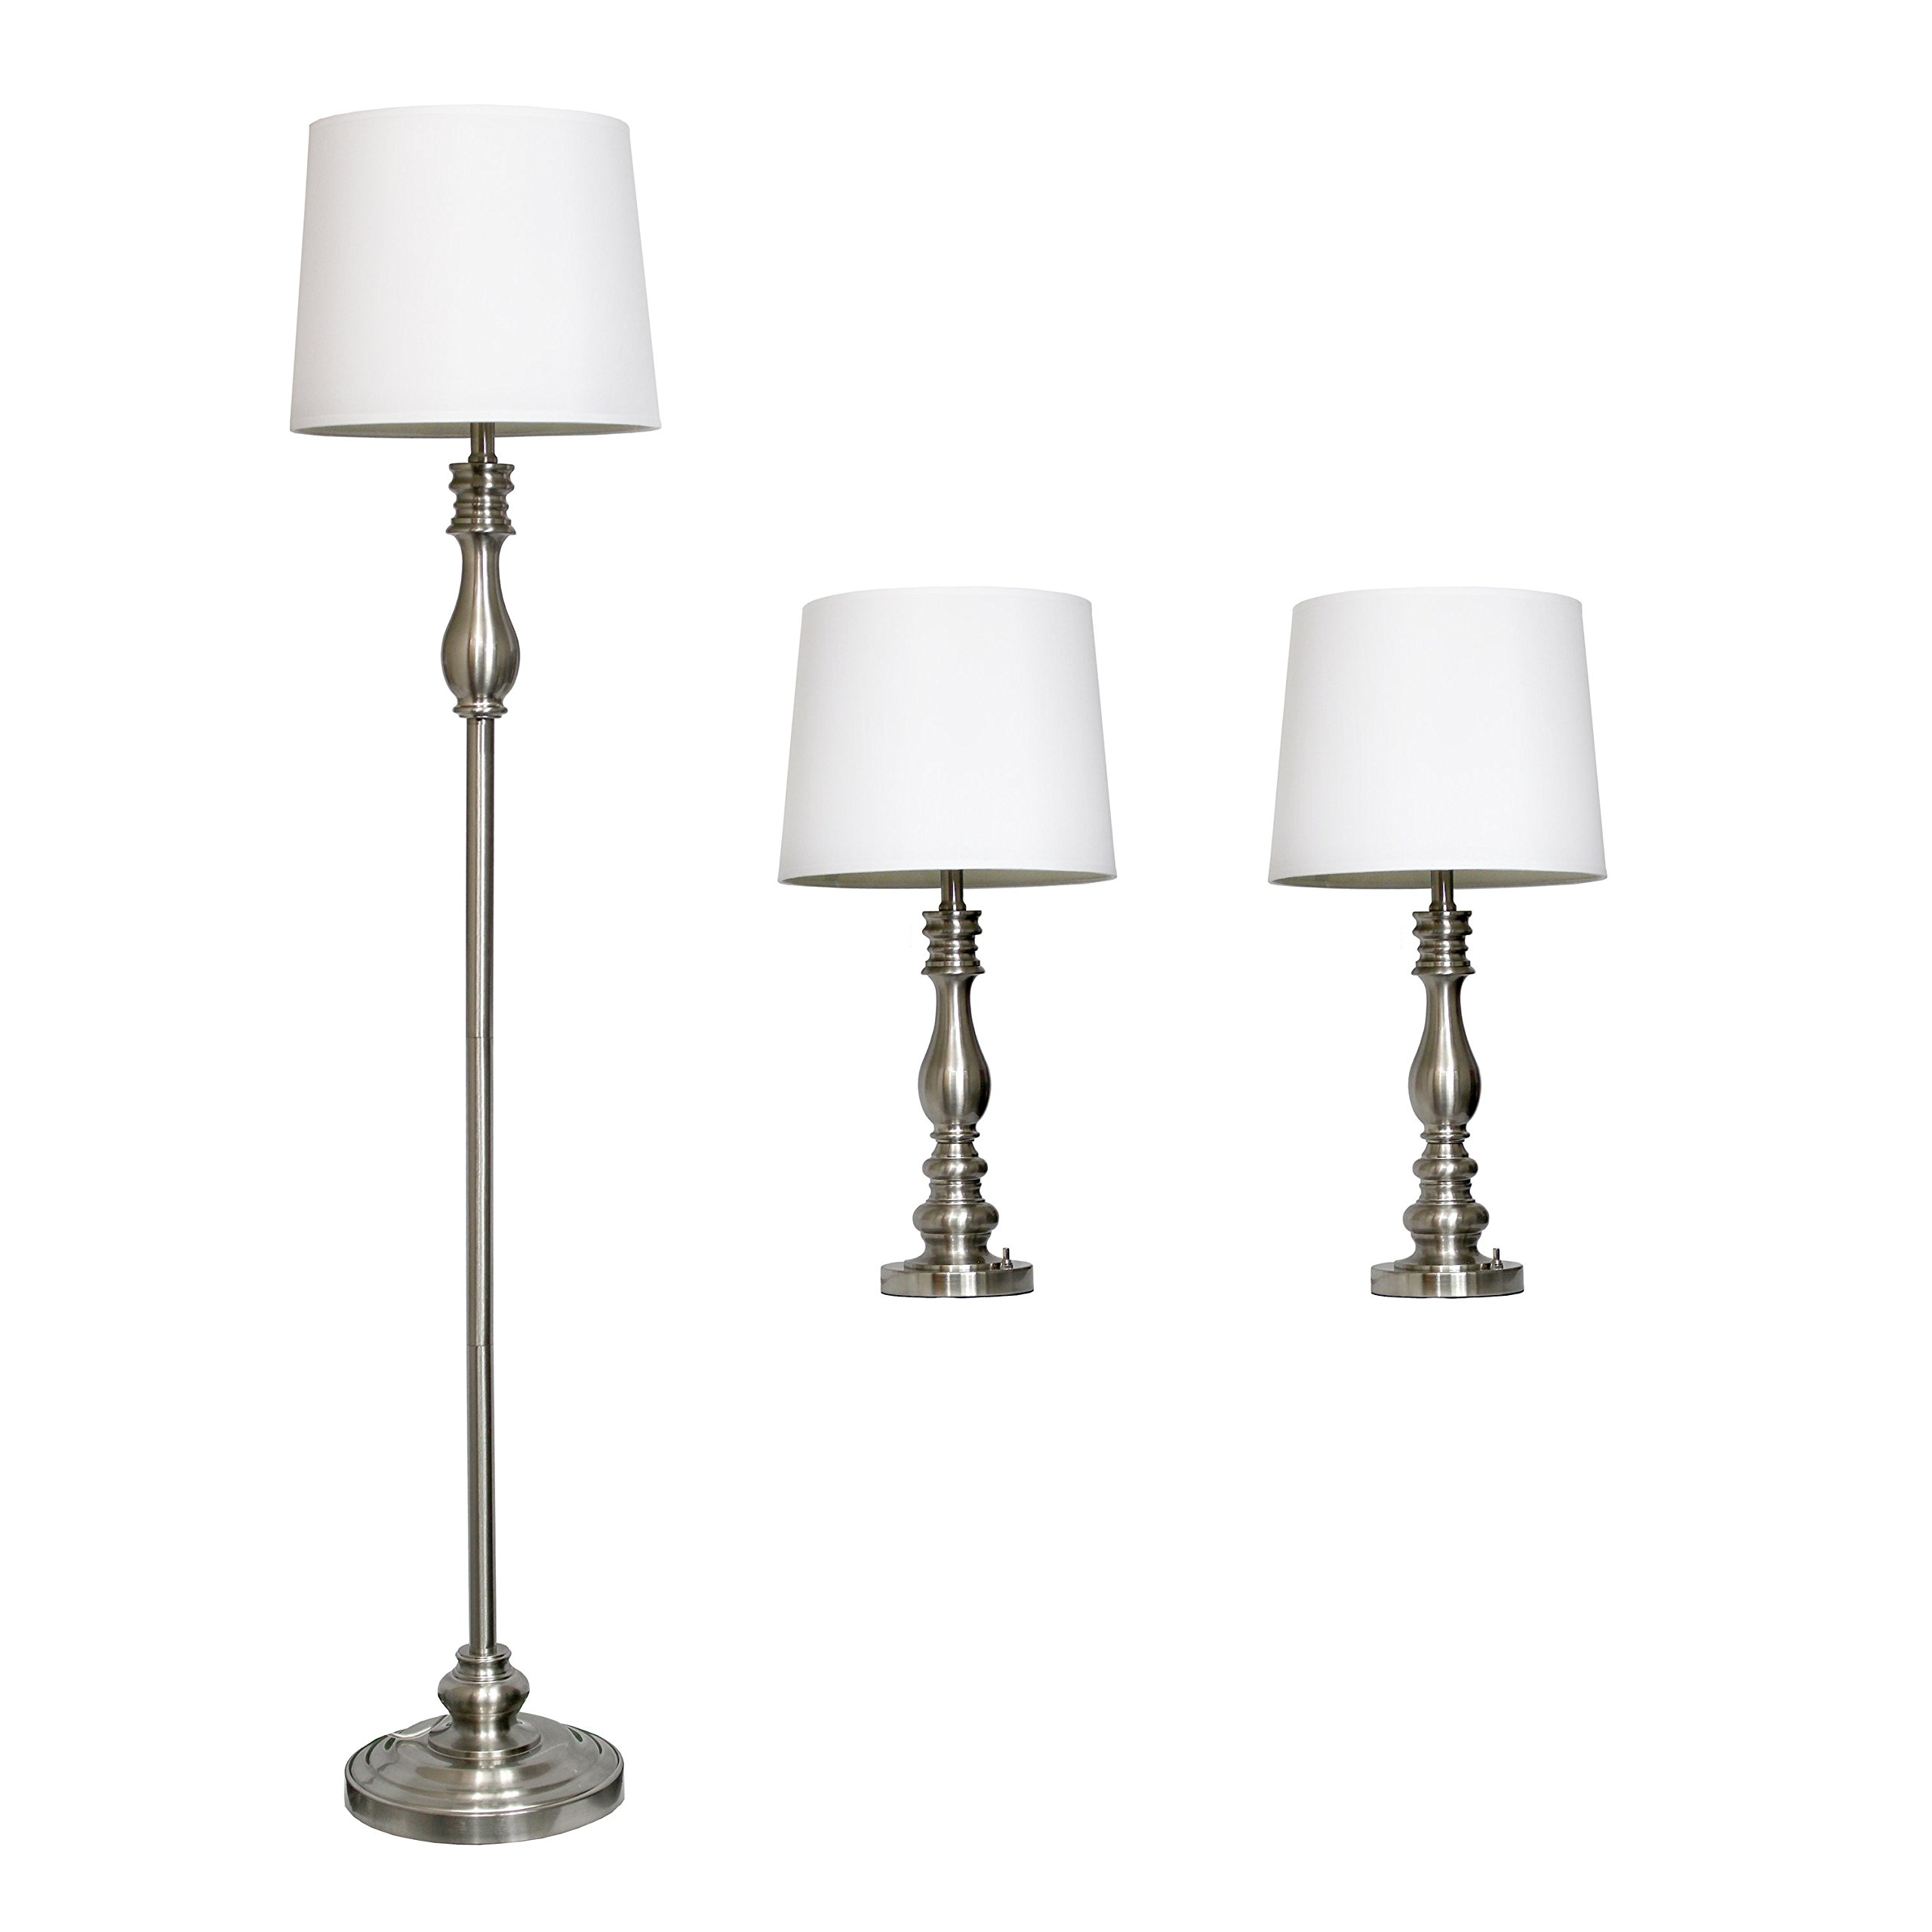 Elegant Designs LC1015-BST Three Pack Lamp Set (2 Table Lamps, 1 Floor Lamp), Brushed Steel